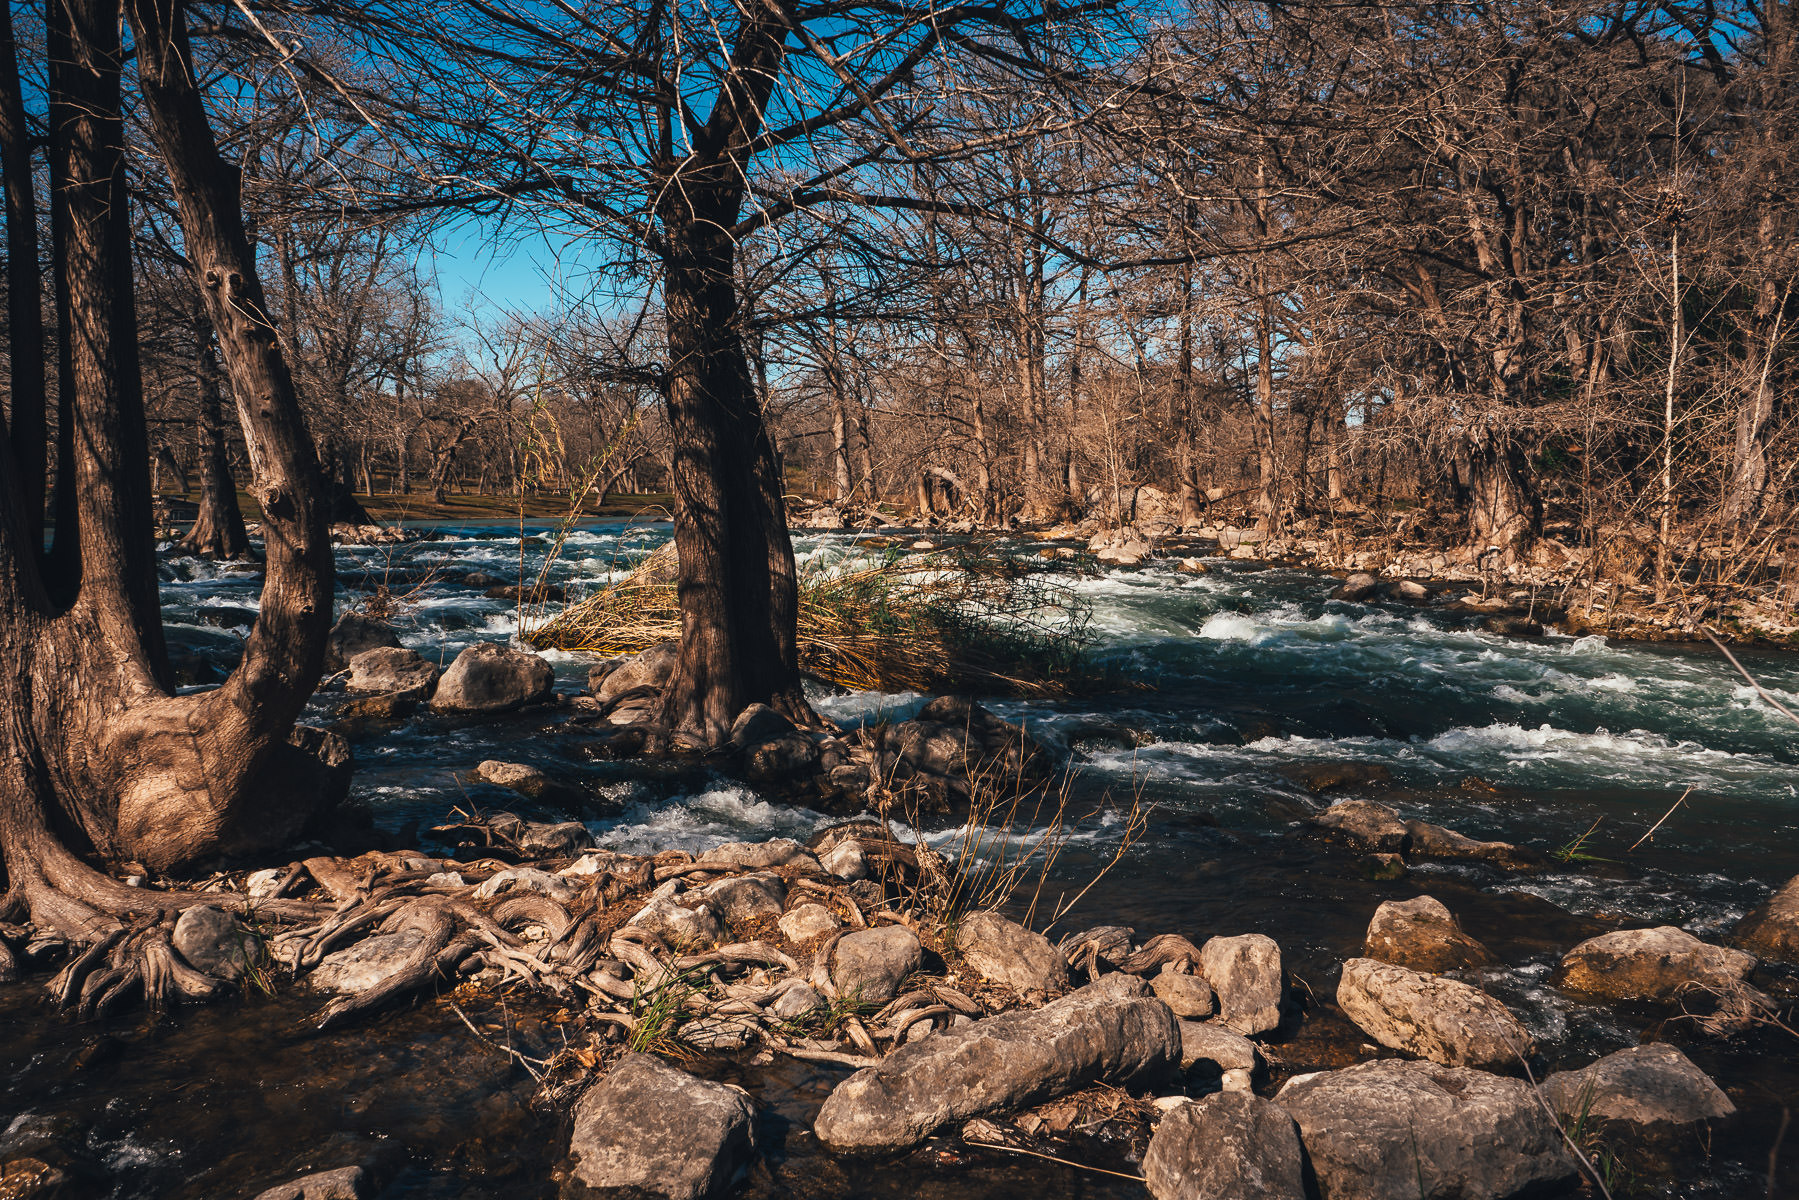 The Guadalupe River flows over rocks near Gruene, Texas.